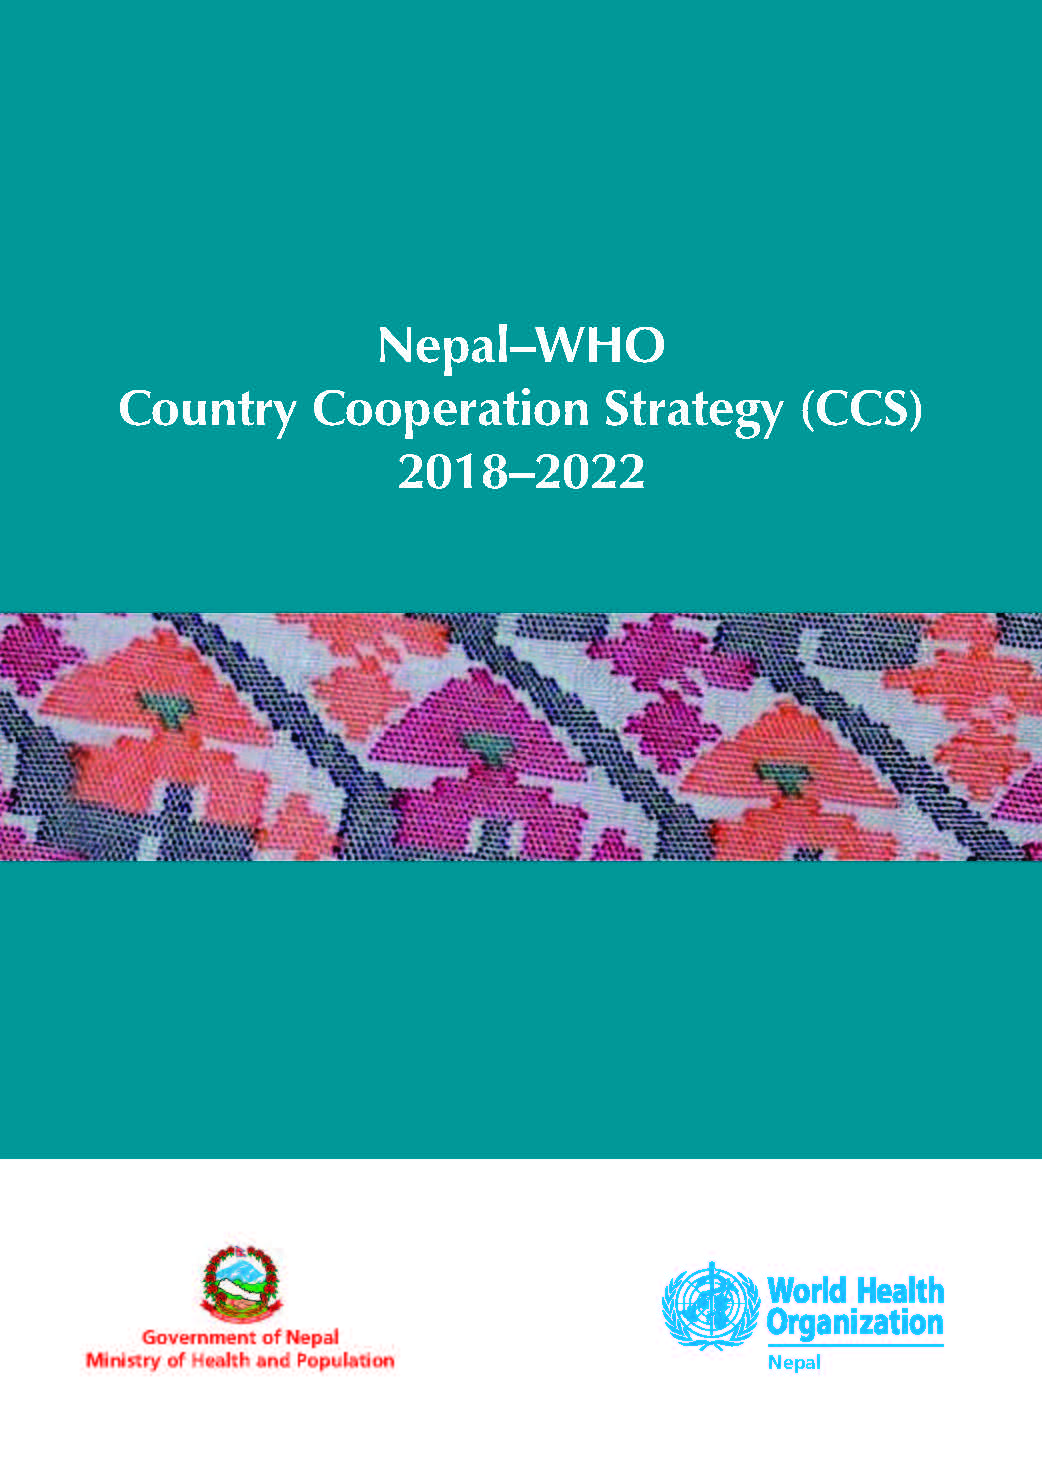 Nepal – WHO country cooperation strategy: 2018-2022